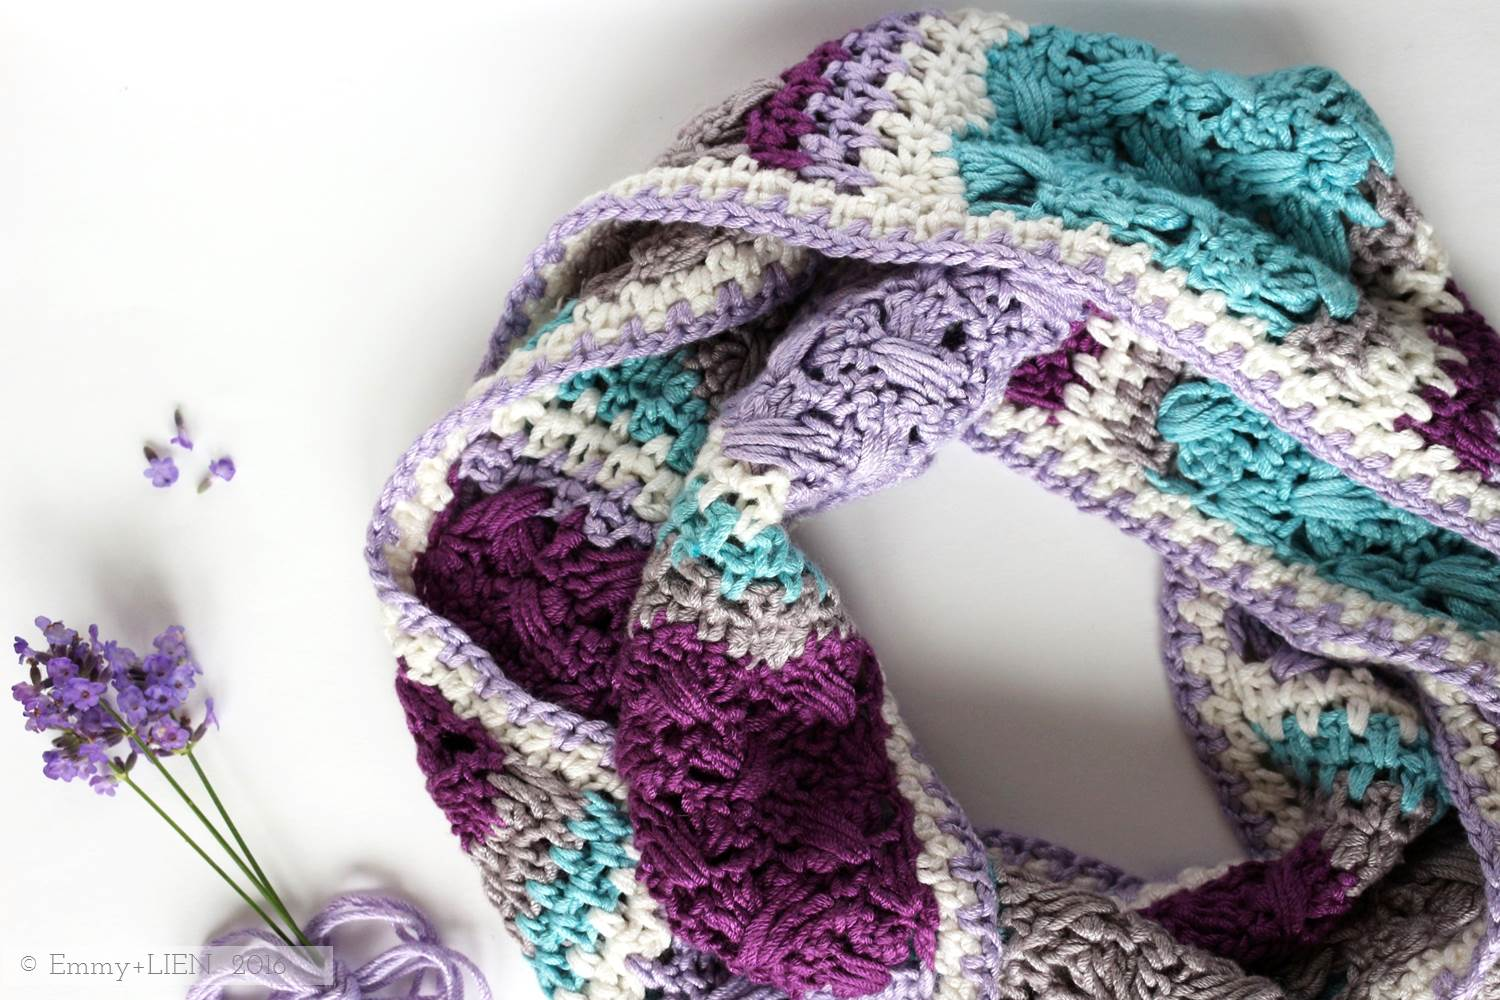 Lavender Skies Crochet Scarf | Pattern by Eline Alcocer, coming early 2016